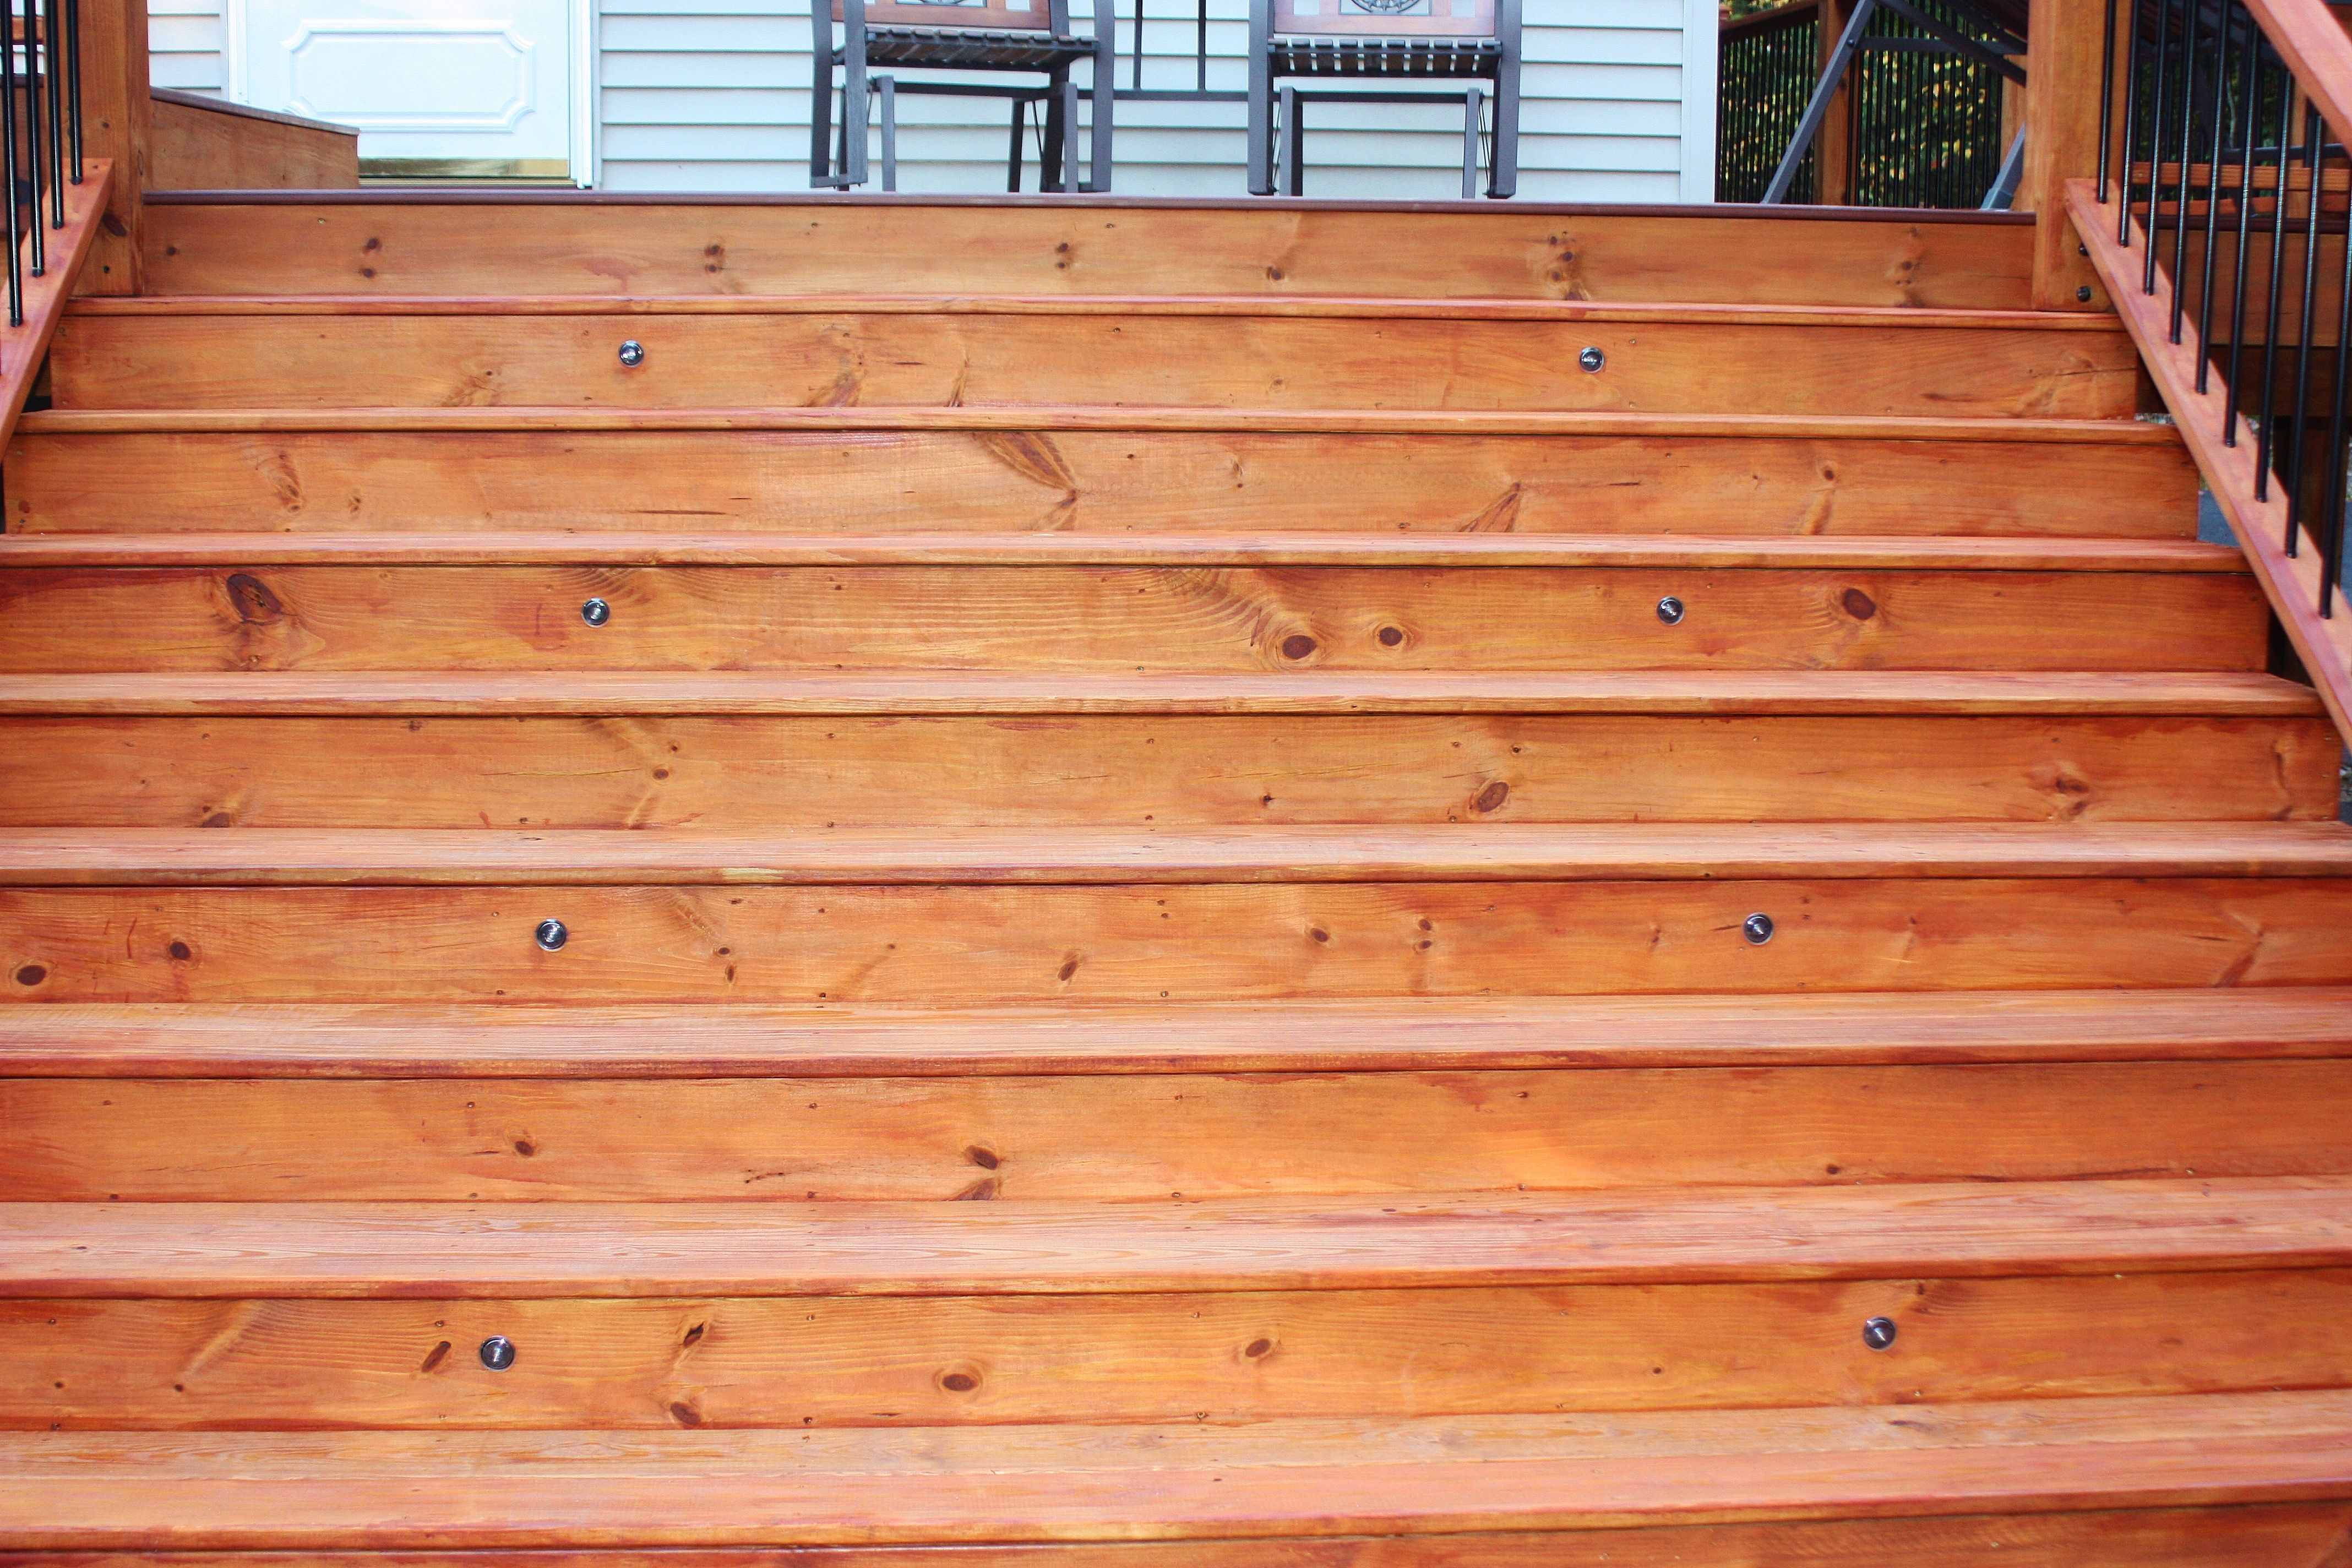 New Deck With One Coat Of Cabot S Australian Timer Oil Mahogany Flame Deck Stain Wood Deck Stain Staining Deck Cabot Australian Timber Oil